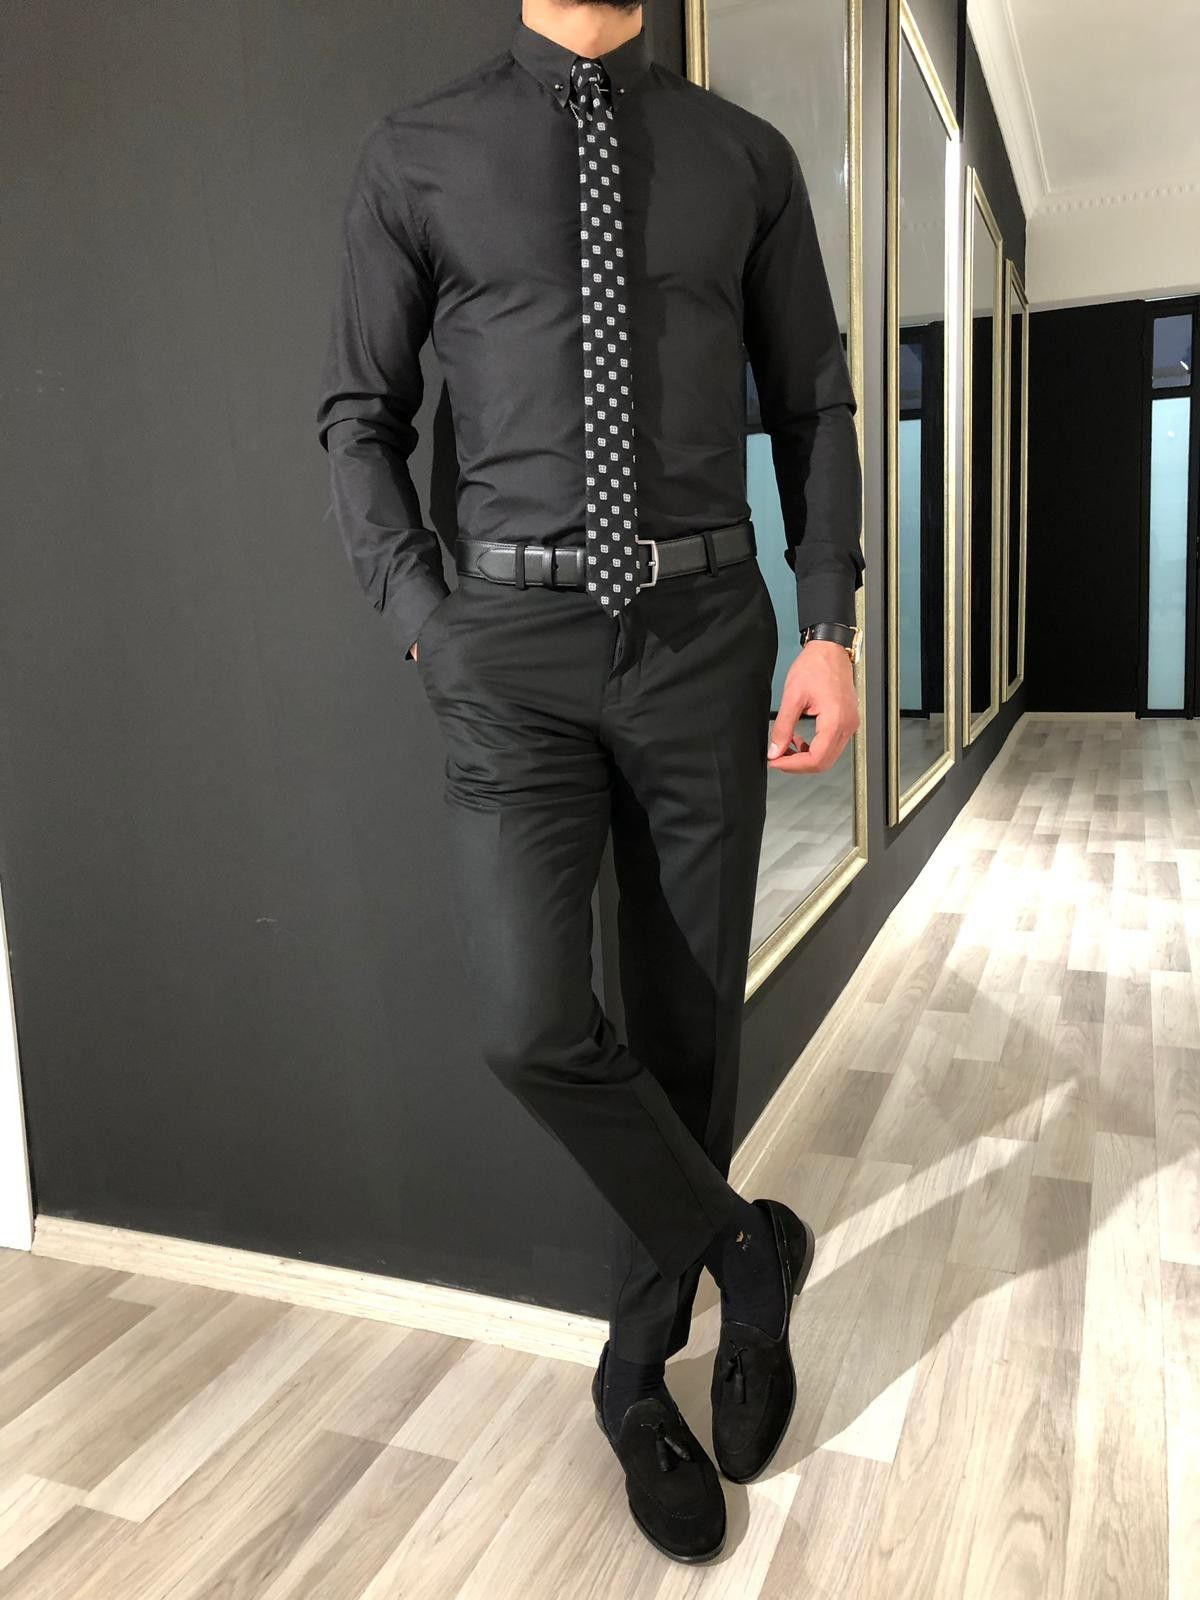 Buy Black Chain Collar Slim Fit Shirt By Gentwith Com With Free Shipping Black Dress Pants Men Black Dress Shirt Men Black Outfit Men [ 1600 x 1200 Pixel ]